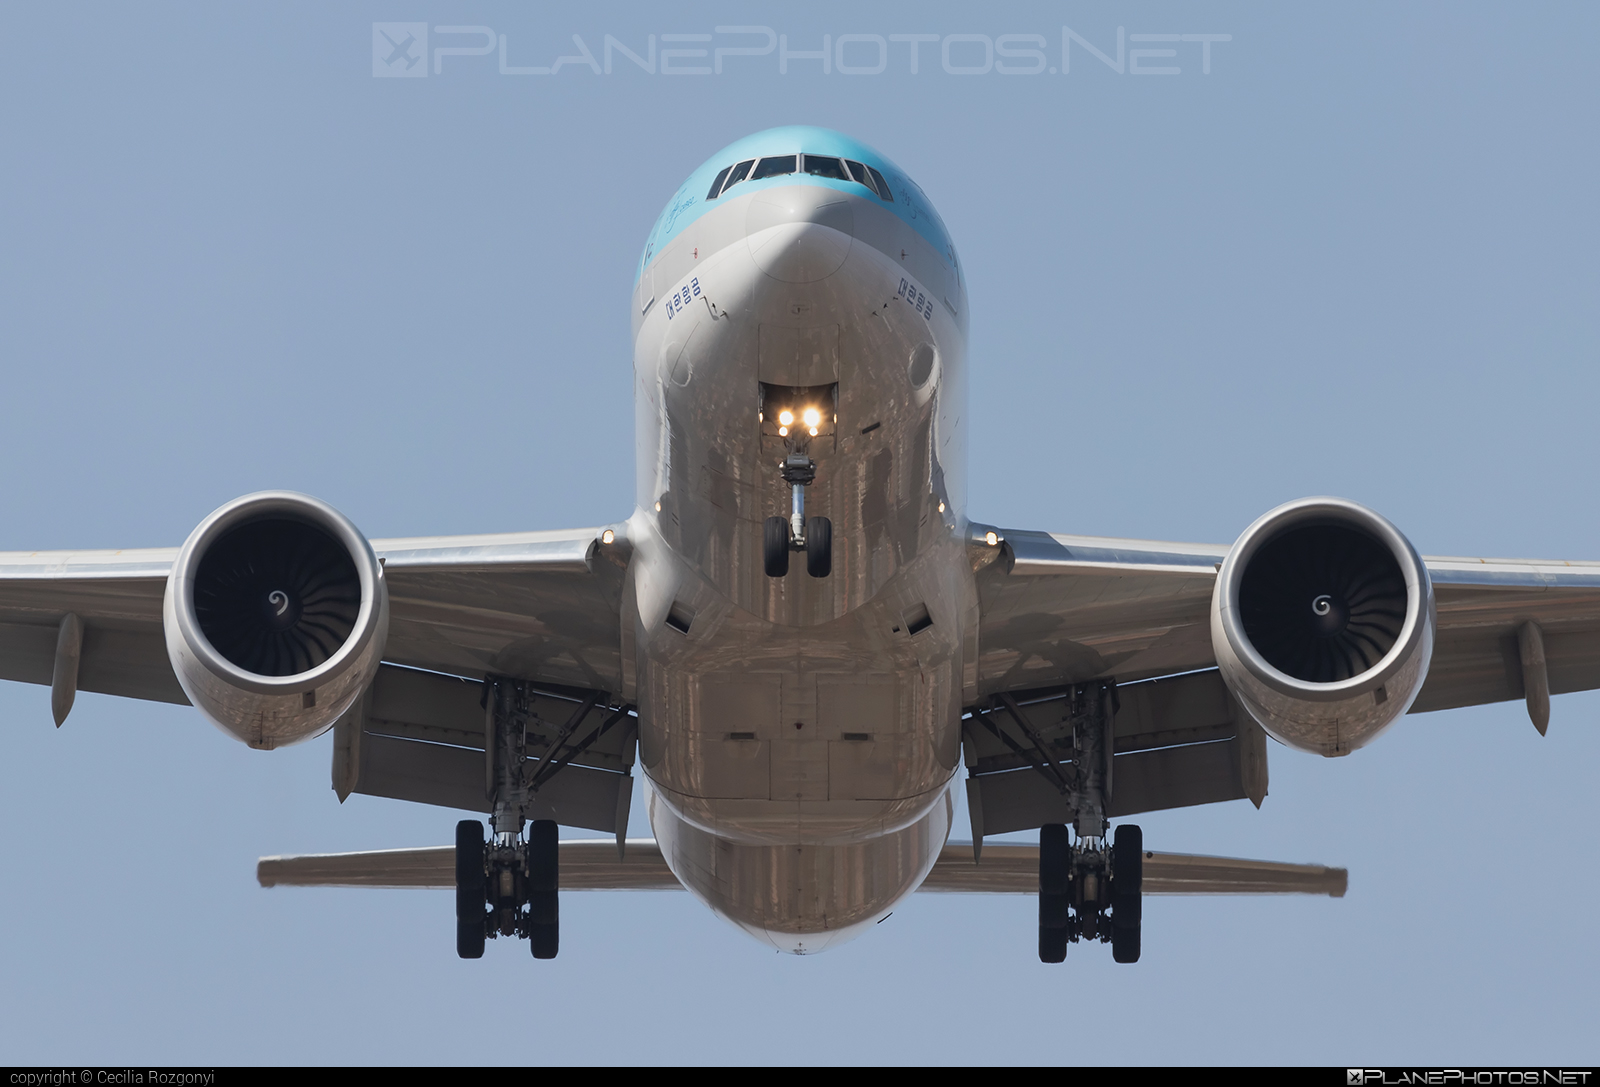 Boeing 777F - HL8045 operated by Korean Air Cargo #b777 #b777f #b777freighter #boeing #boeing777 #koreanair #koreanaircargo #tripleseven